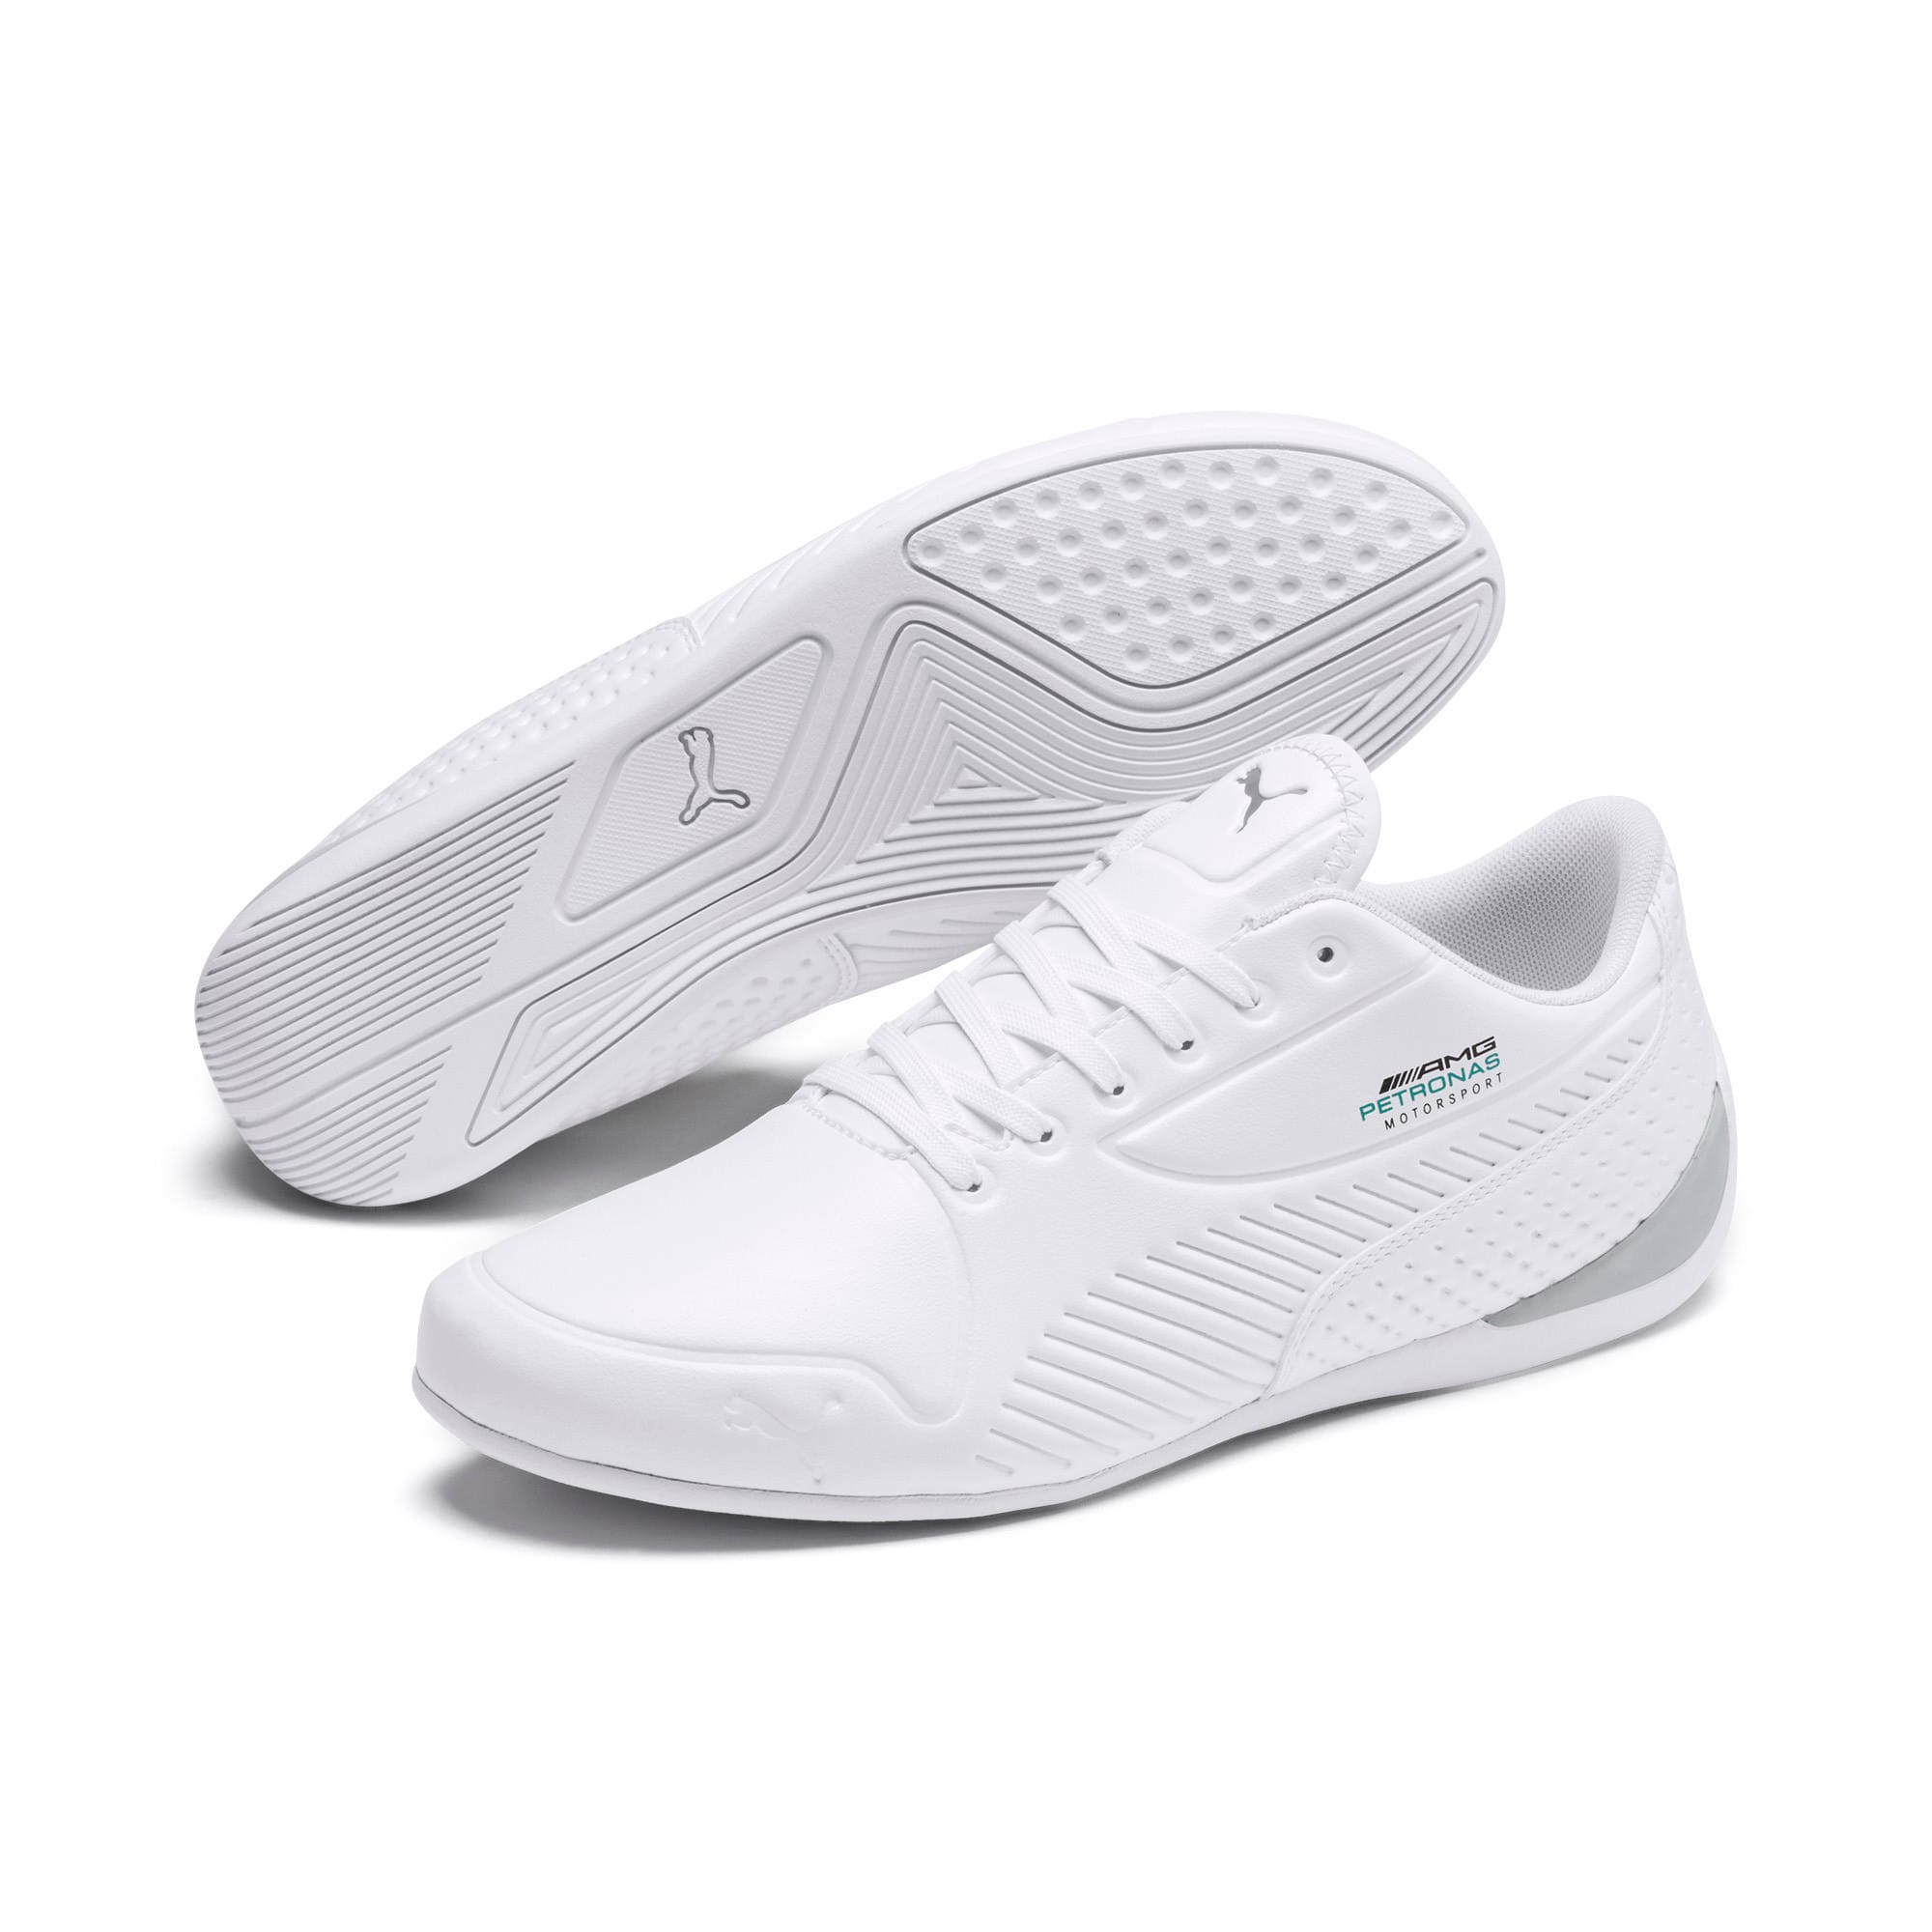 Thumbnail 3 of Mercedes AMG Petronas Drift Cat 7S Ultra Men's Shoes, Puma White-Puma White, medium